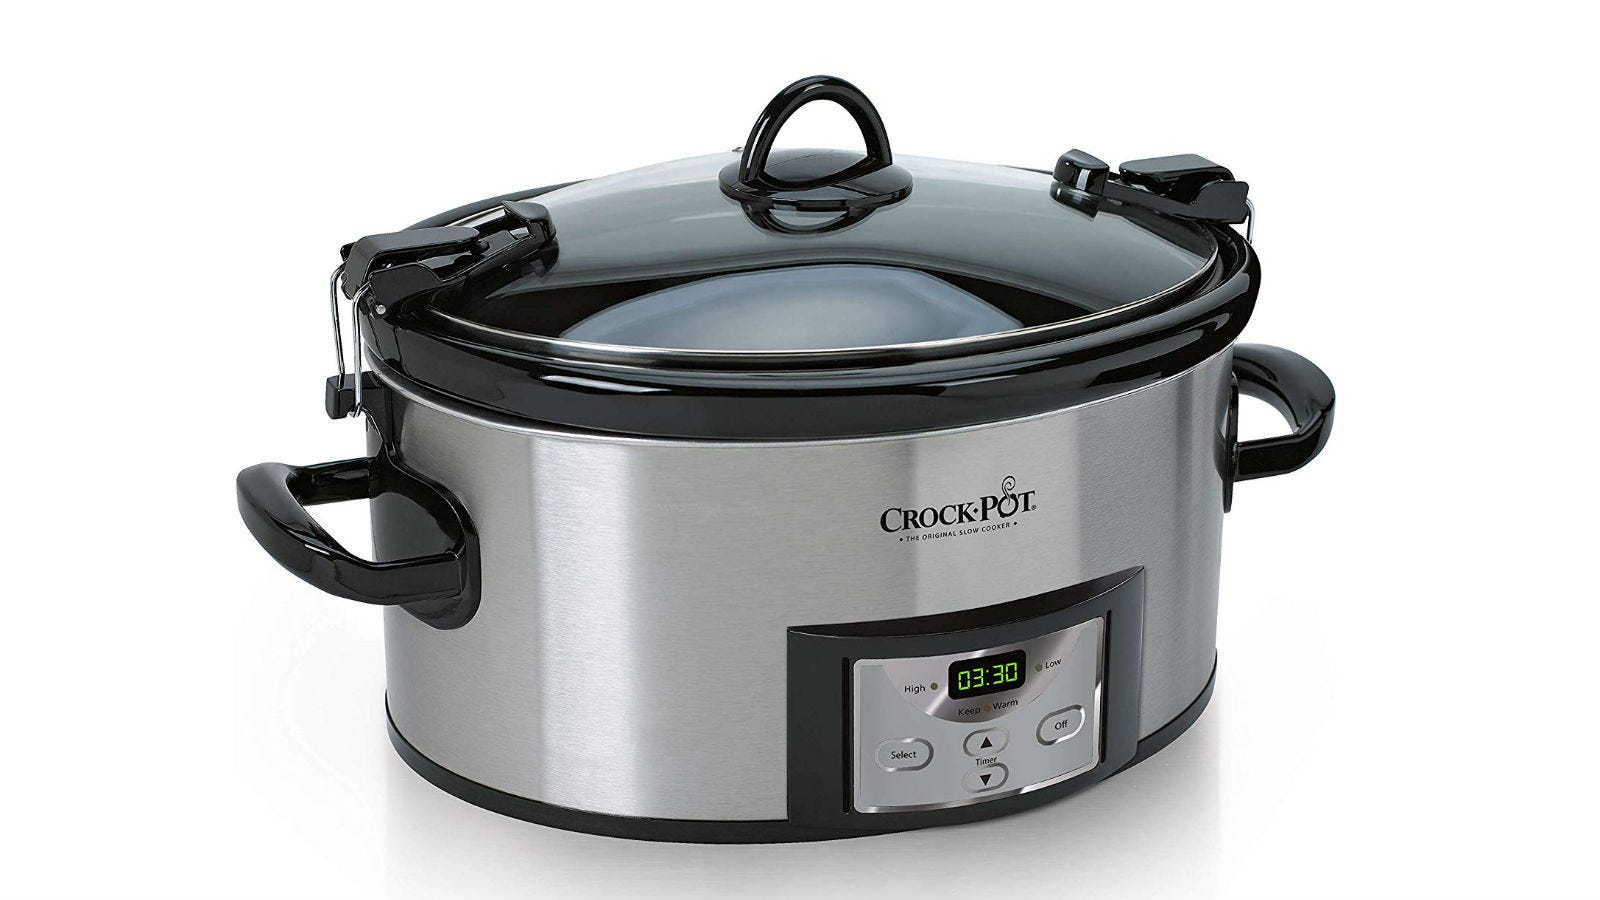 The Crock-Pot 6-Quart Cook and Carry Programmable Slow Cooker with the lid on.